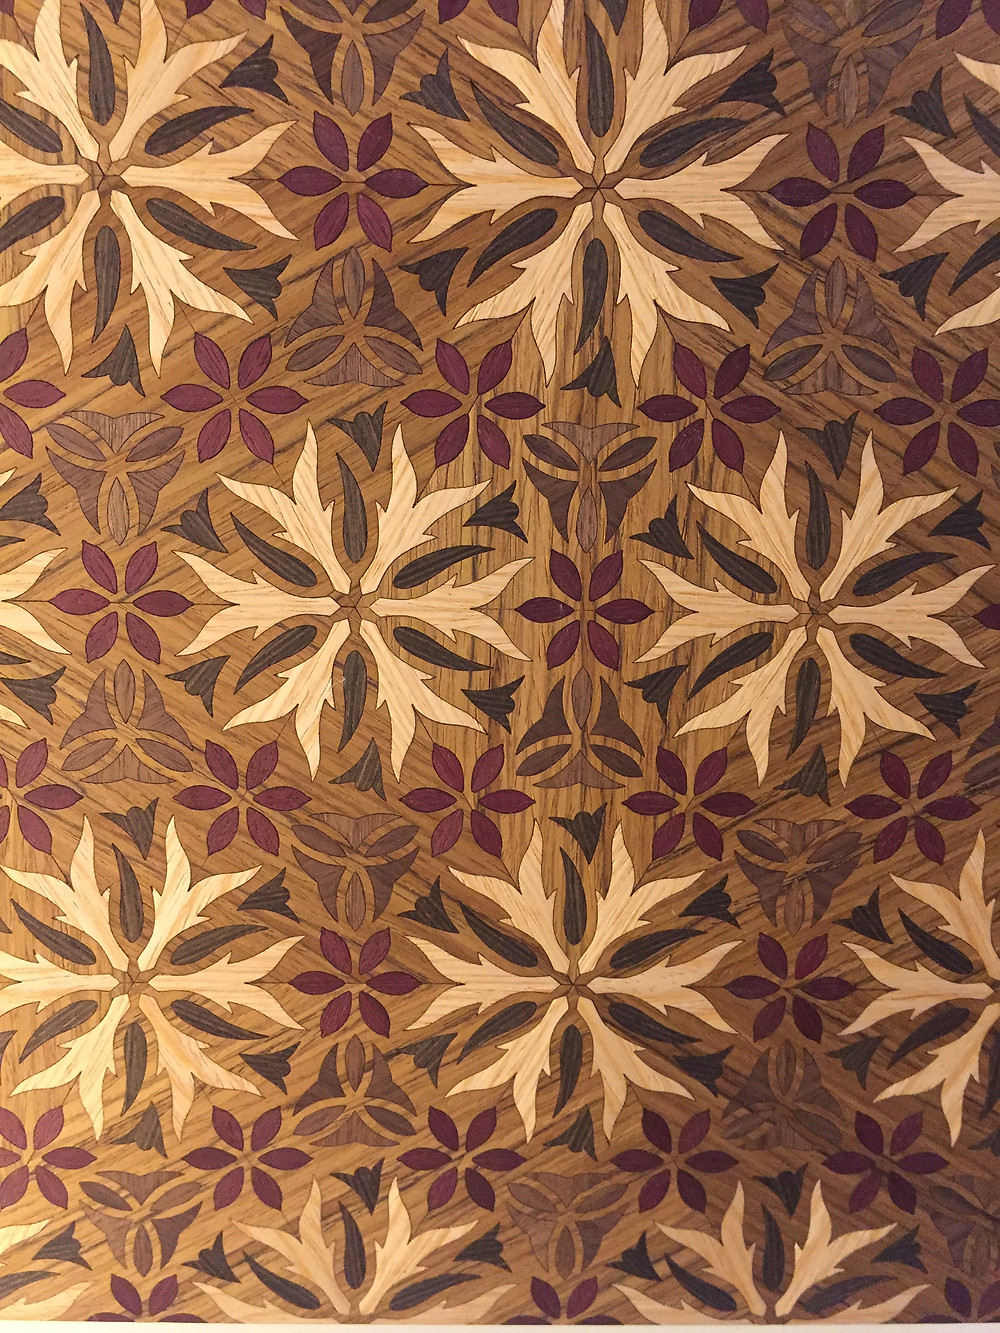 Digital wood marquetry by Christy Oates